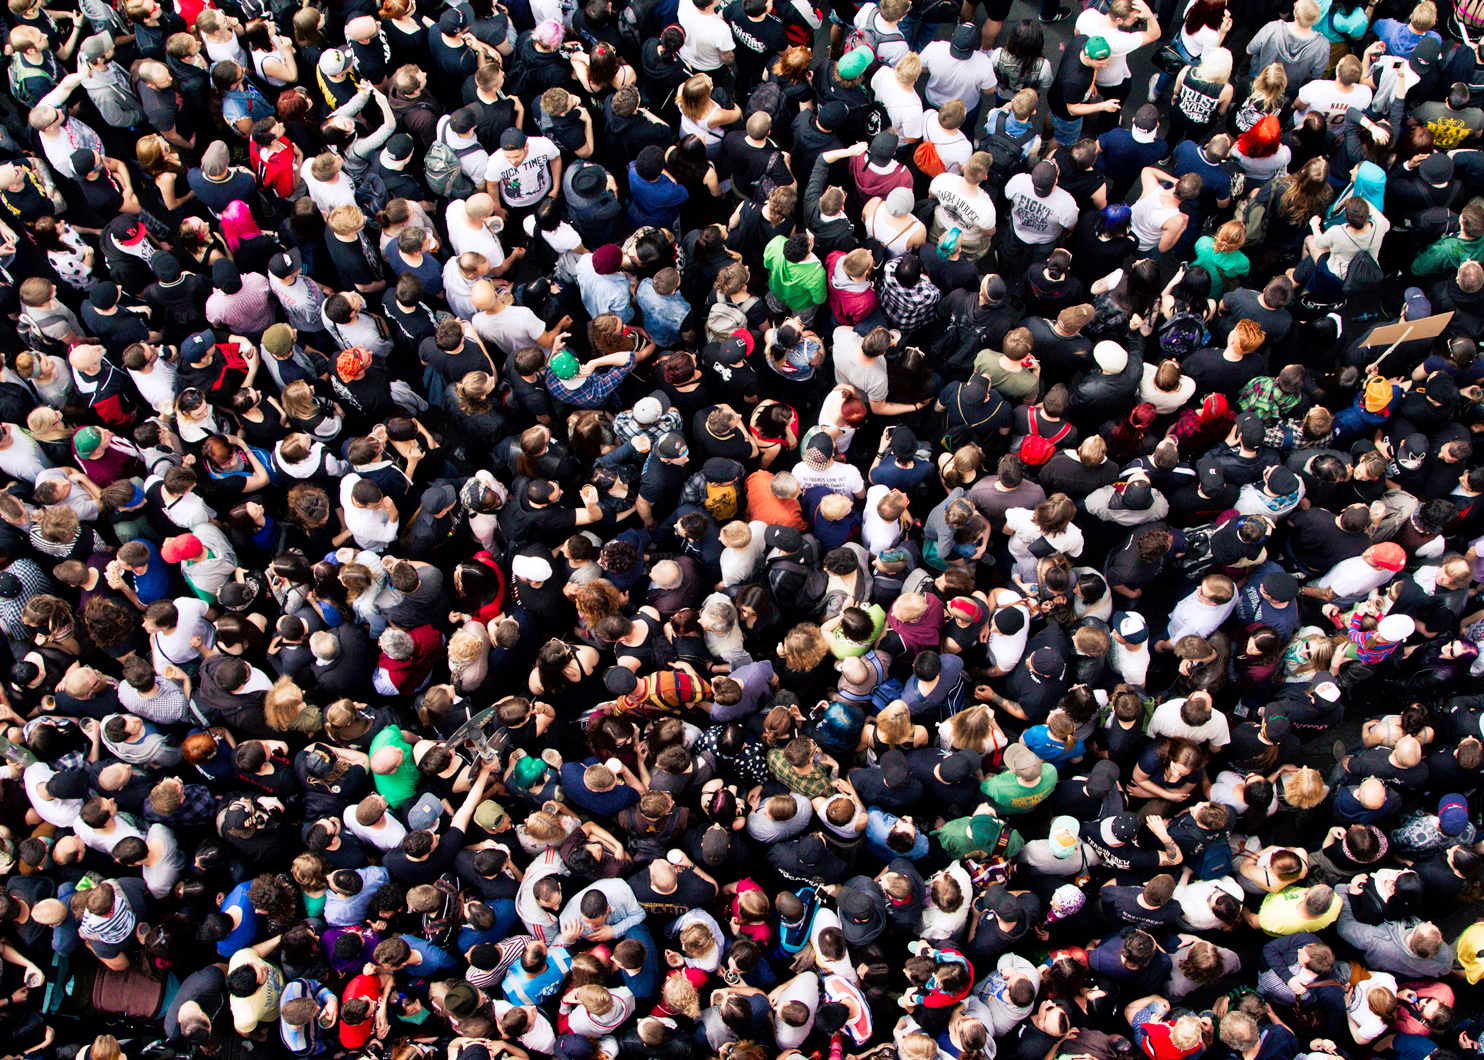 Crowd-Above-People-Berlin-May-Day-Matthew-Coleman-Photography